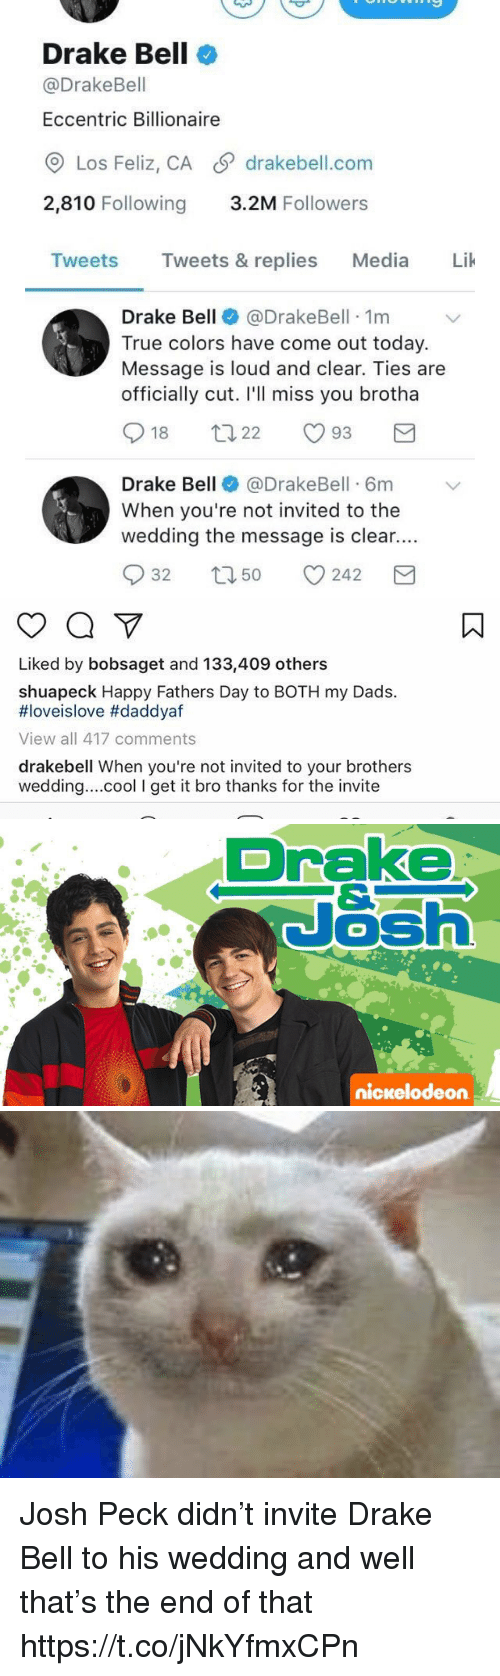 Drake, Drake Bell, and Fathers Day: Drake Bell  @Drake Bell  Eccentric Billionaire  CO Los Feliz, CA SP drakebell.com  2,810 Following  3.2M Followers  Tweets  Tweets & replies  Media  Lik  Drake Bell  @Drake Bell 1m  True colors have come out today.  Message is loud and clear. Ties are  officially cut. I'll miss you brotha  S t 22  18  93  Drake Bell  @DrakeBell 6m v  When you're not invited to the  wedding the message is clear....  S 32 t 50 242  M   Liked by bobsaget and 133,409 others  shuapeck Happy Fathers Day to BOTH my Dads.  HIoveislove #daddyaf  View all 417 comments  drakebell When you're not invited to your brothers  wedding....cool I get it bro thanks for the invite   Drake  Nash  nickelodeon Josh Peck didn't invite Drake Bell to his wedding and well that's the end of that https://t.co/jNkYfmxCPn